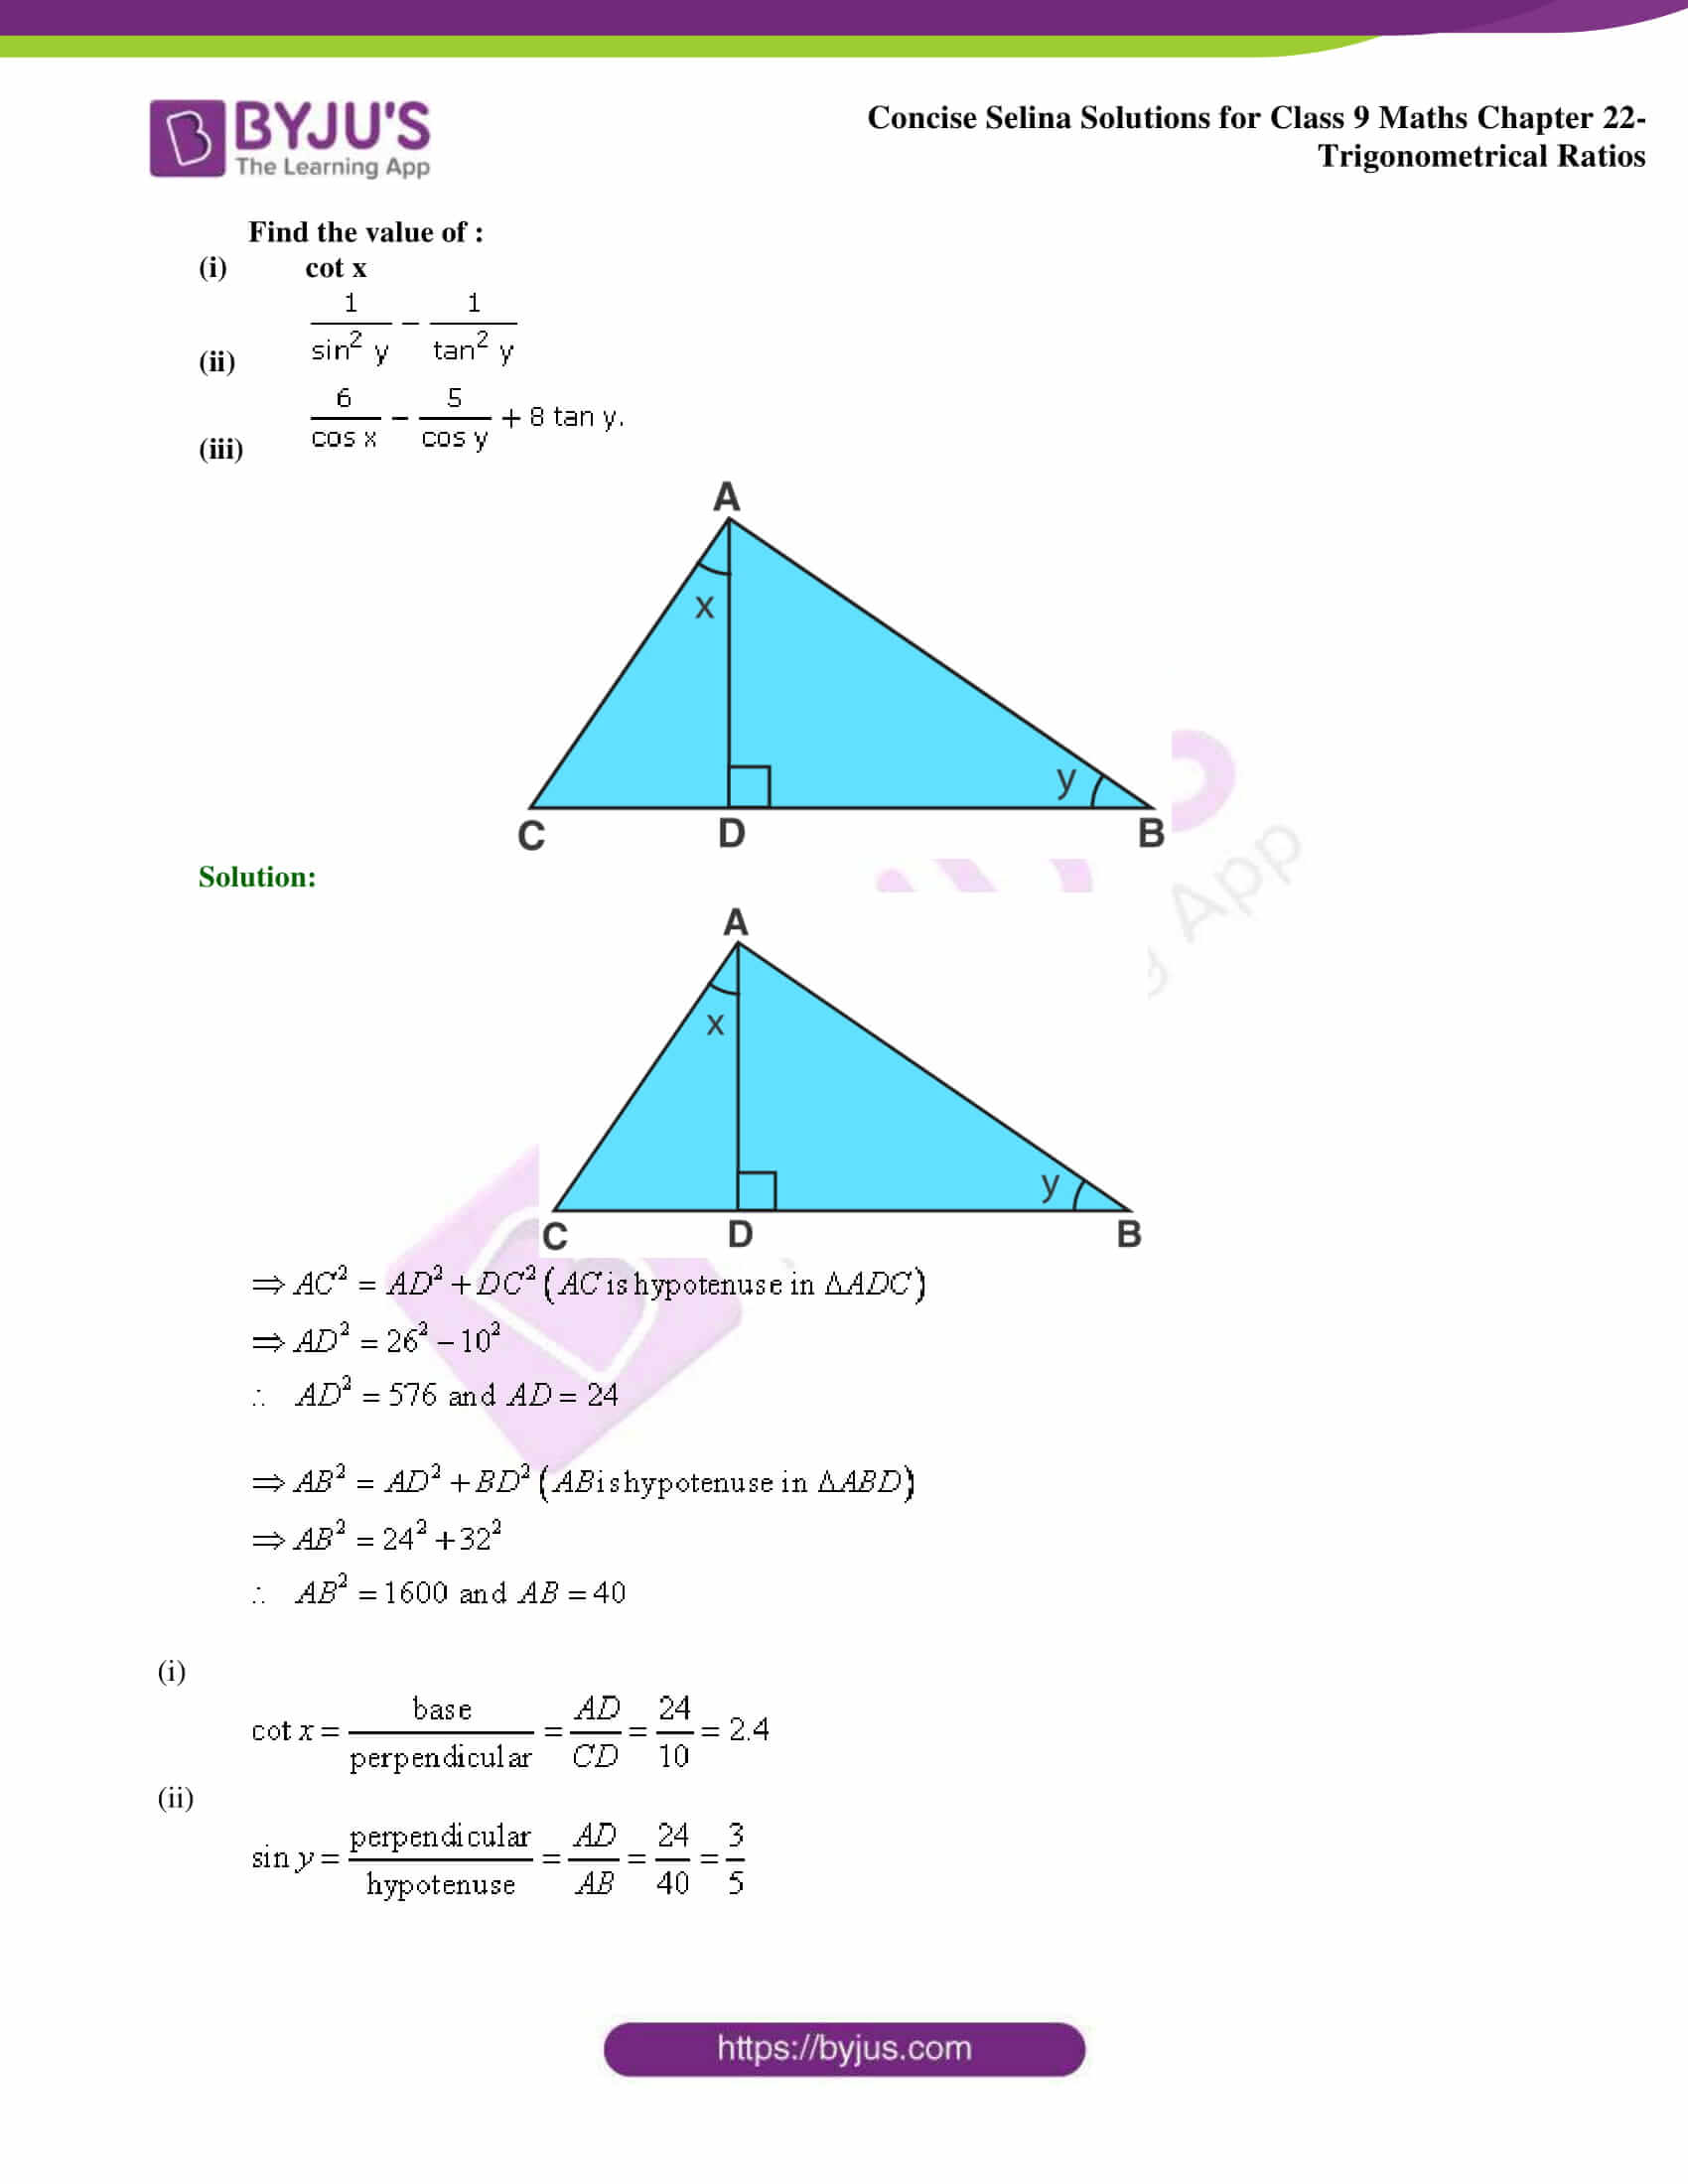 Concise Selina Solutions Class 9 Maths Chapter 22 Trigonometrical Ratios part 20